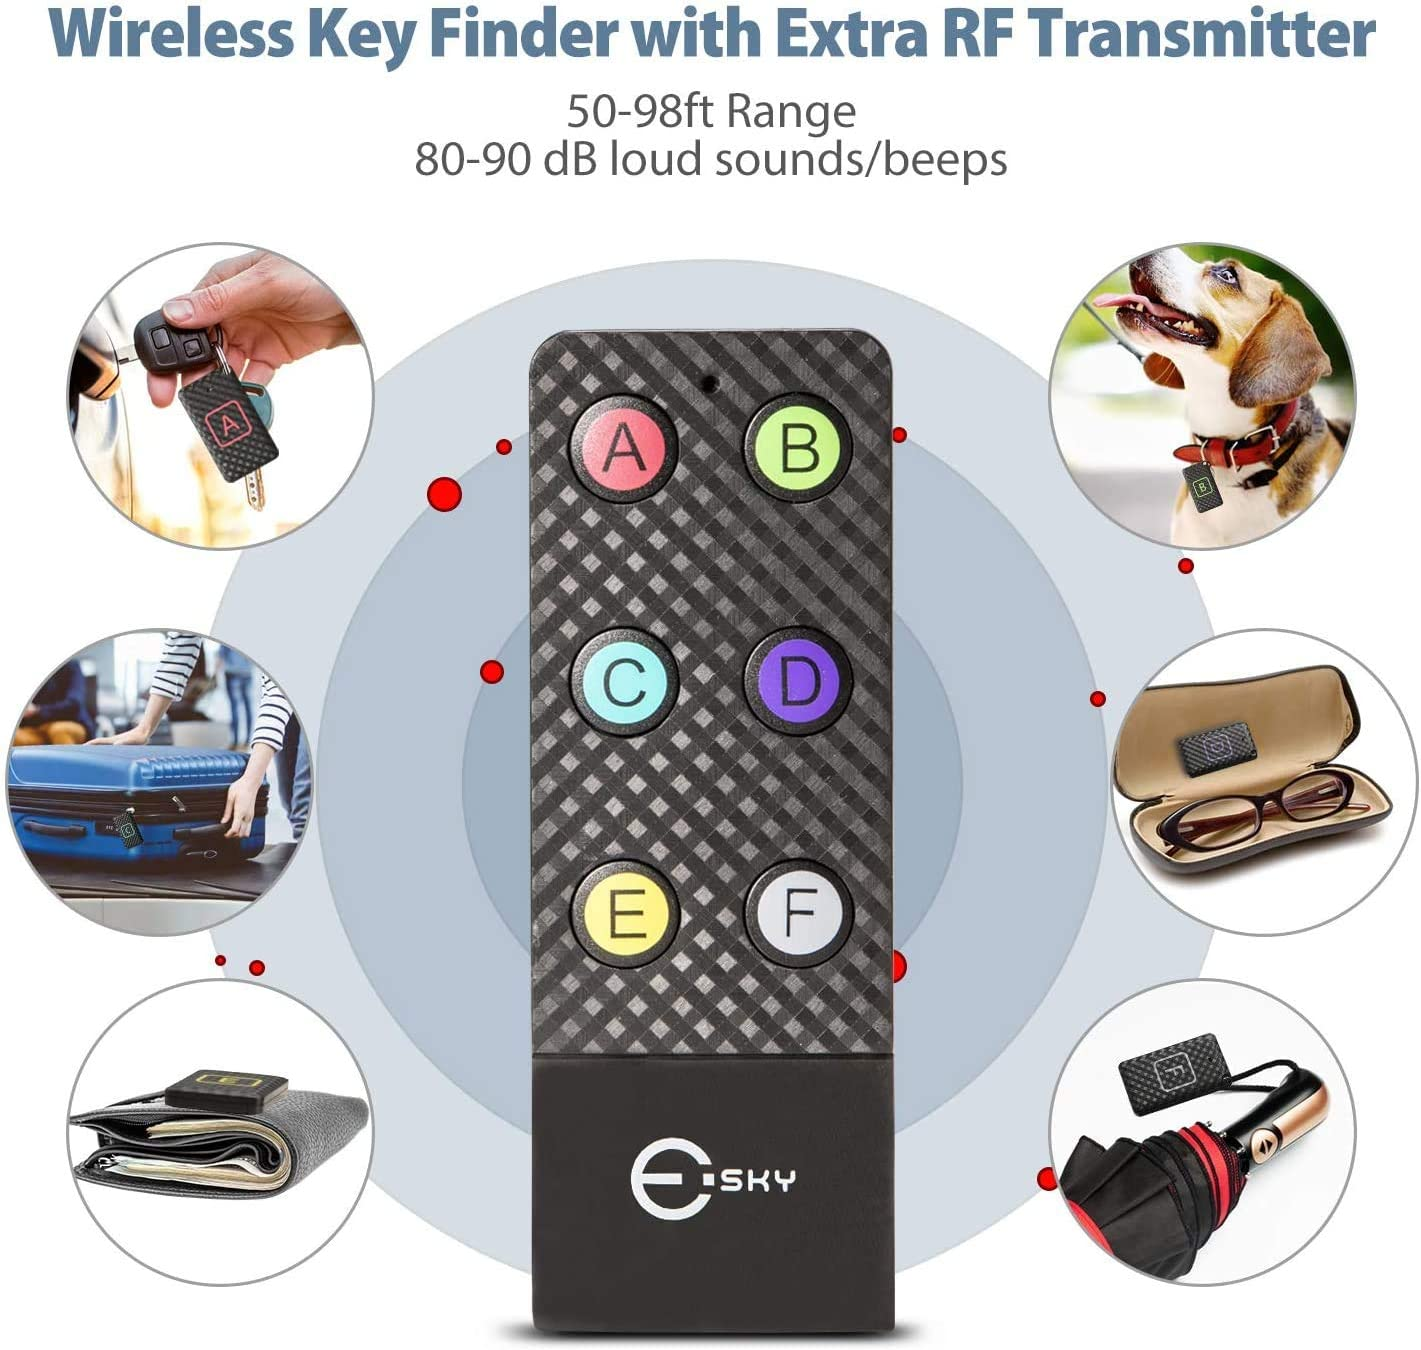 Wireless Key RF Locator Esky Key Finder with Extra Backup RF Transmitter Pet Tracker Wallet Tracker Wireless RF Item Locator Item Tracker Support Remote Control,2 RF Transmitter and 6 Receivers